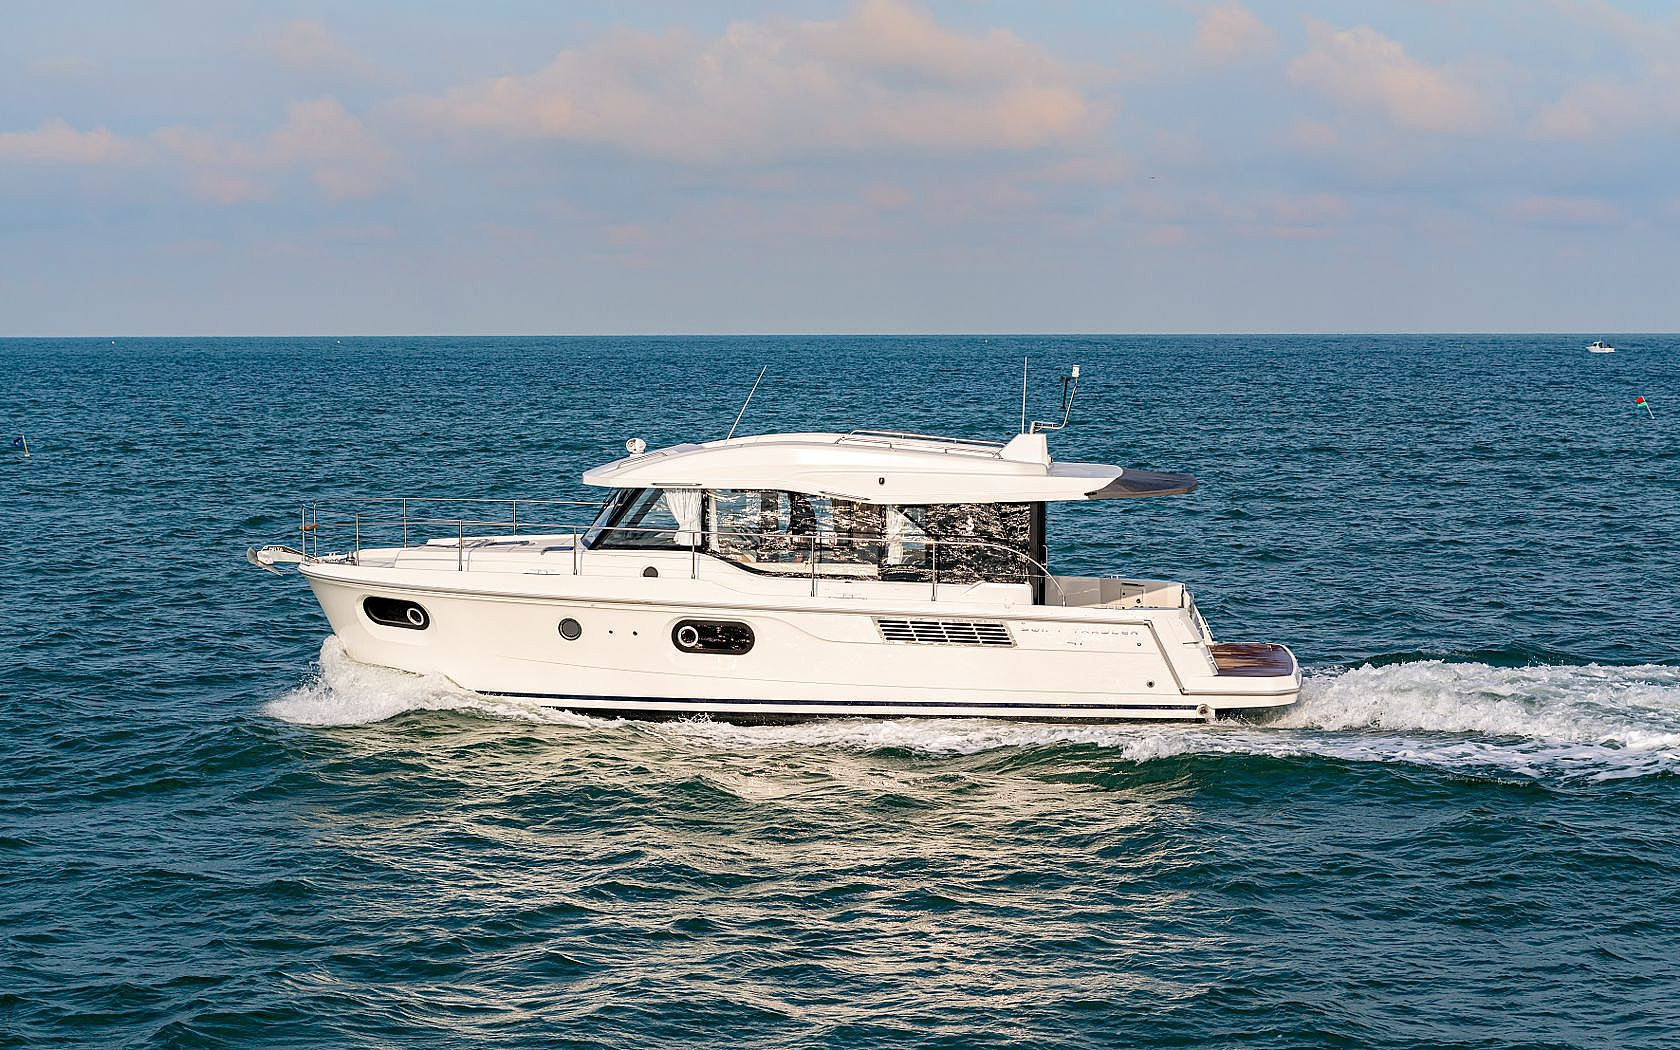 Beneteau Swift Trawler 41 Sedan - Novost 20192019 for sale: 333500.-EUR